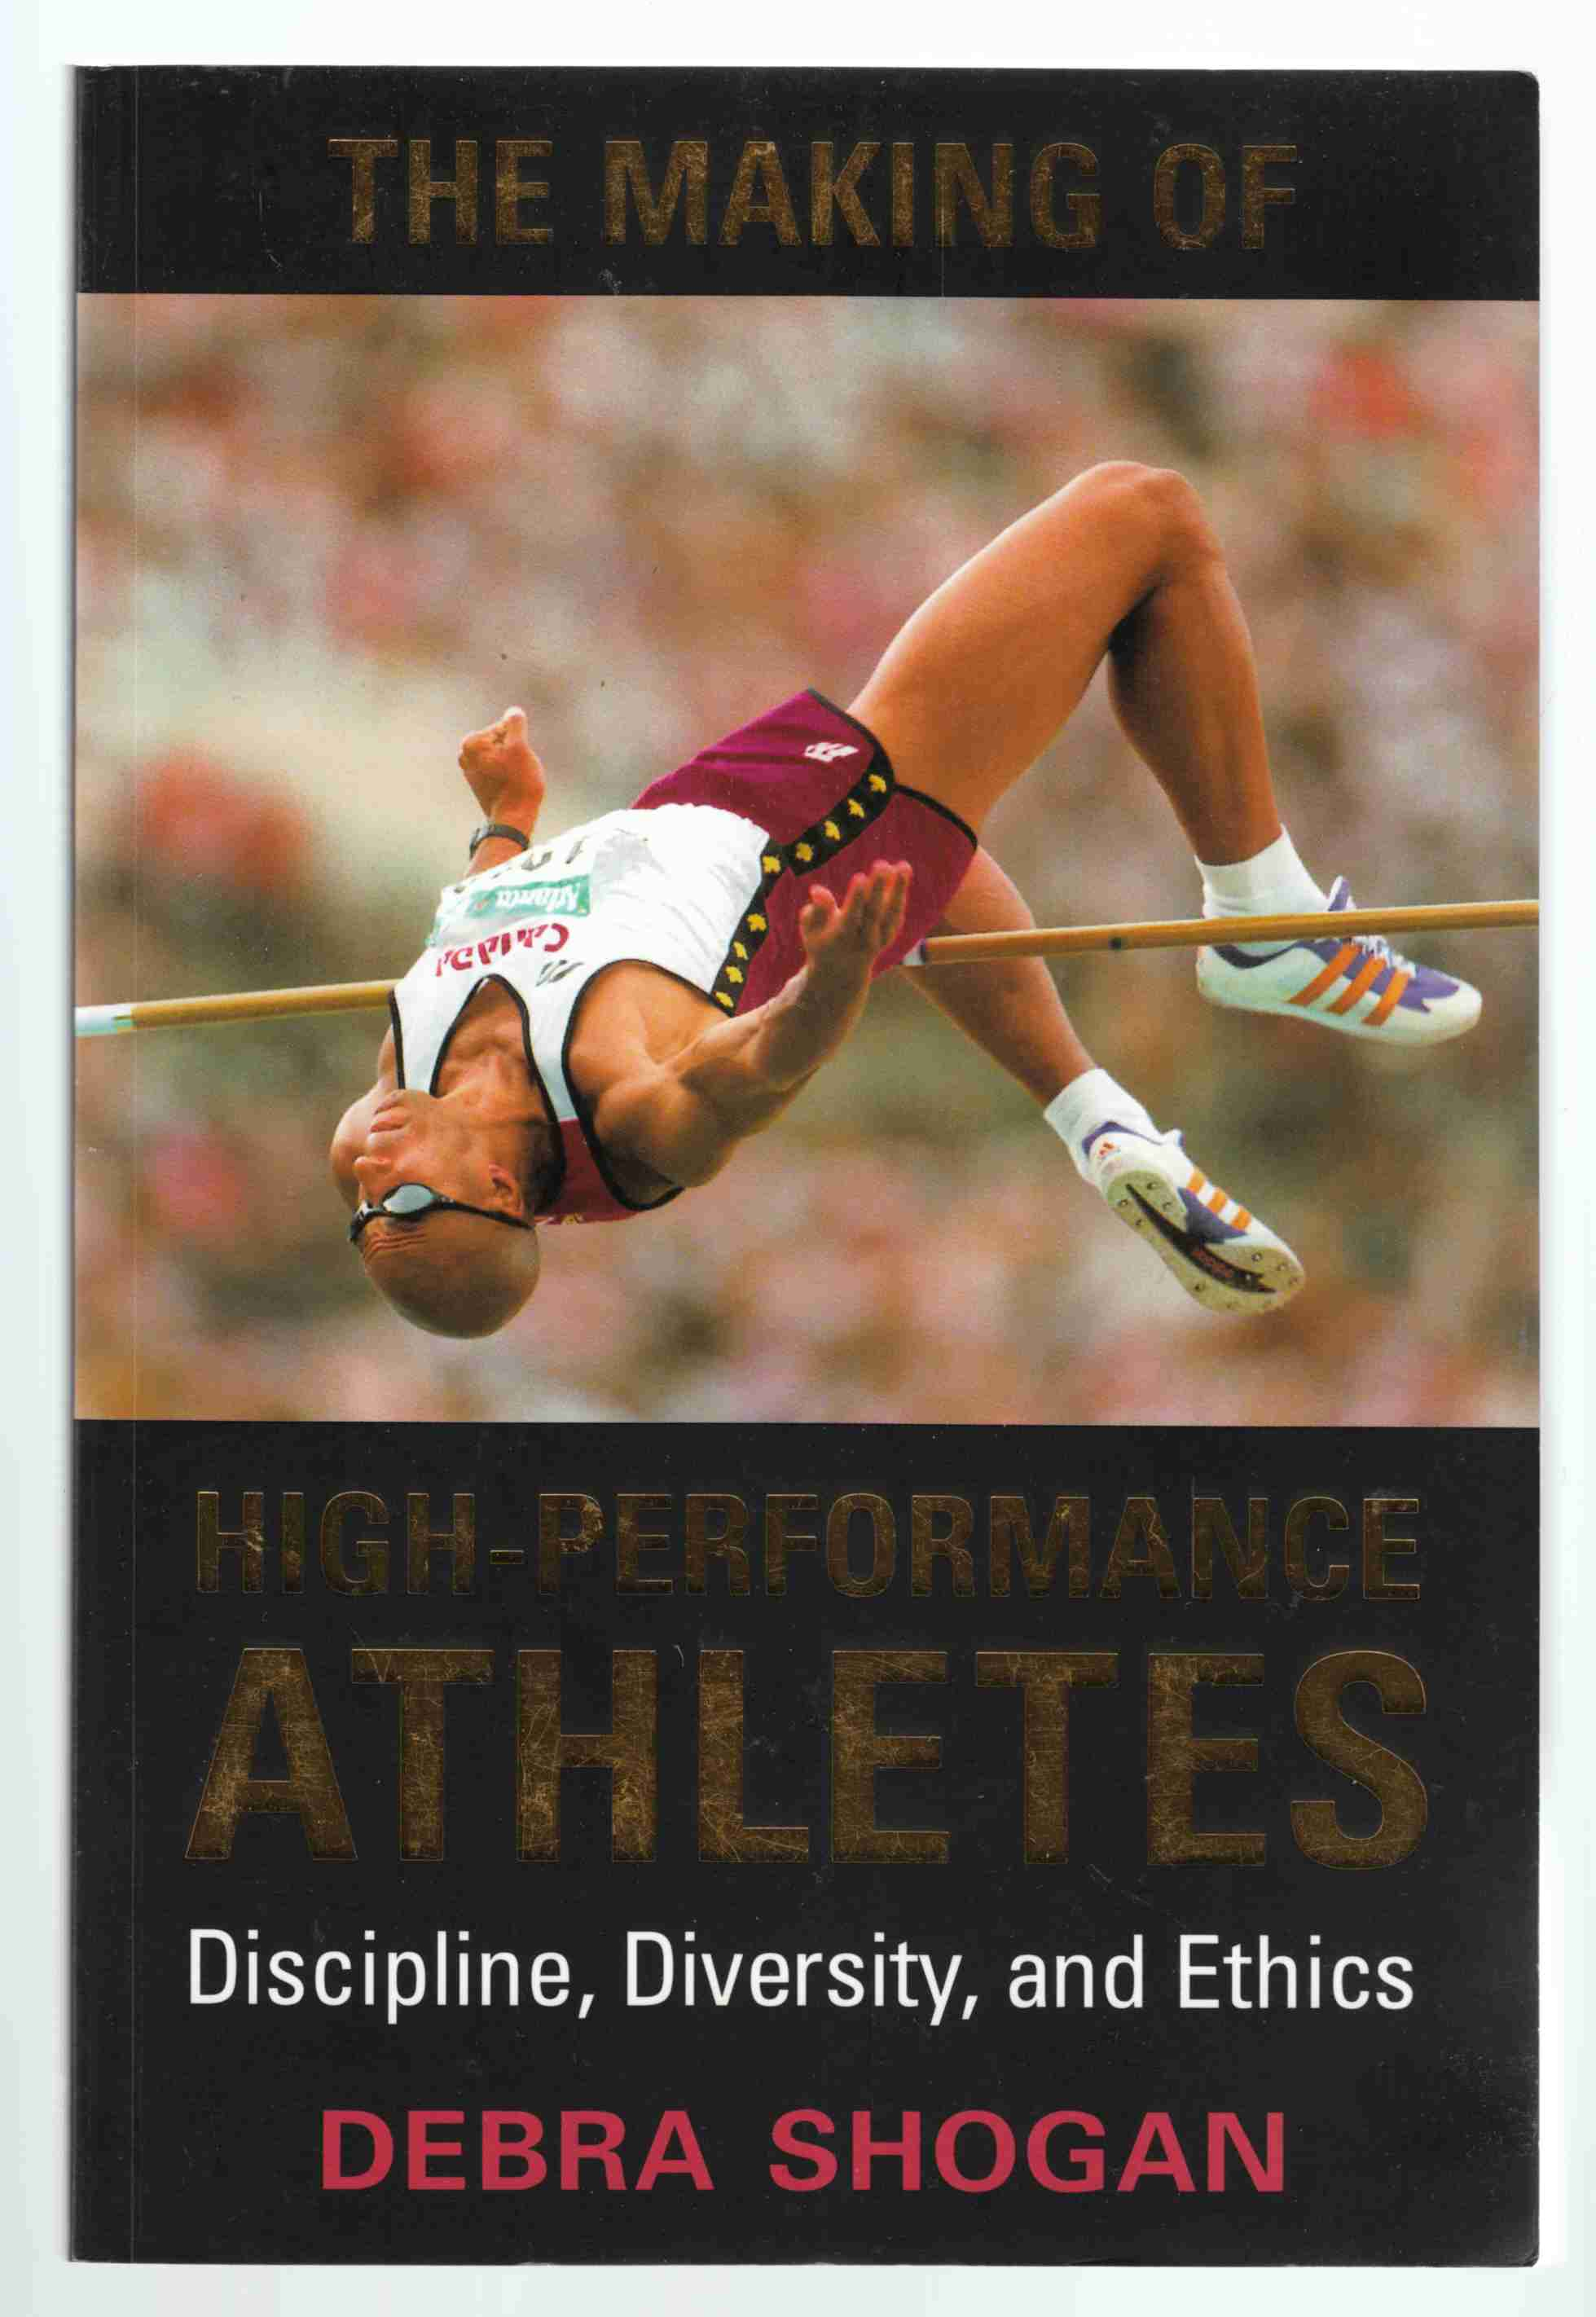 Image for The Making of High-Performance Athletes Discipline, Diversity, Ethics